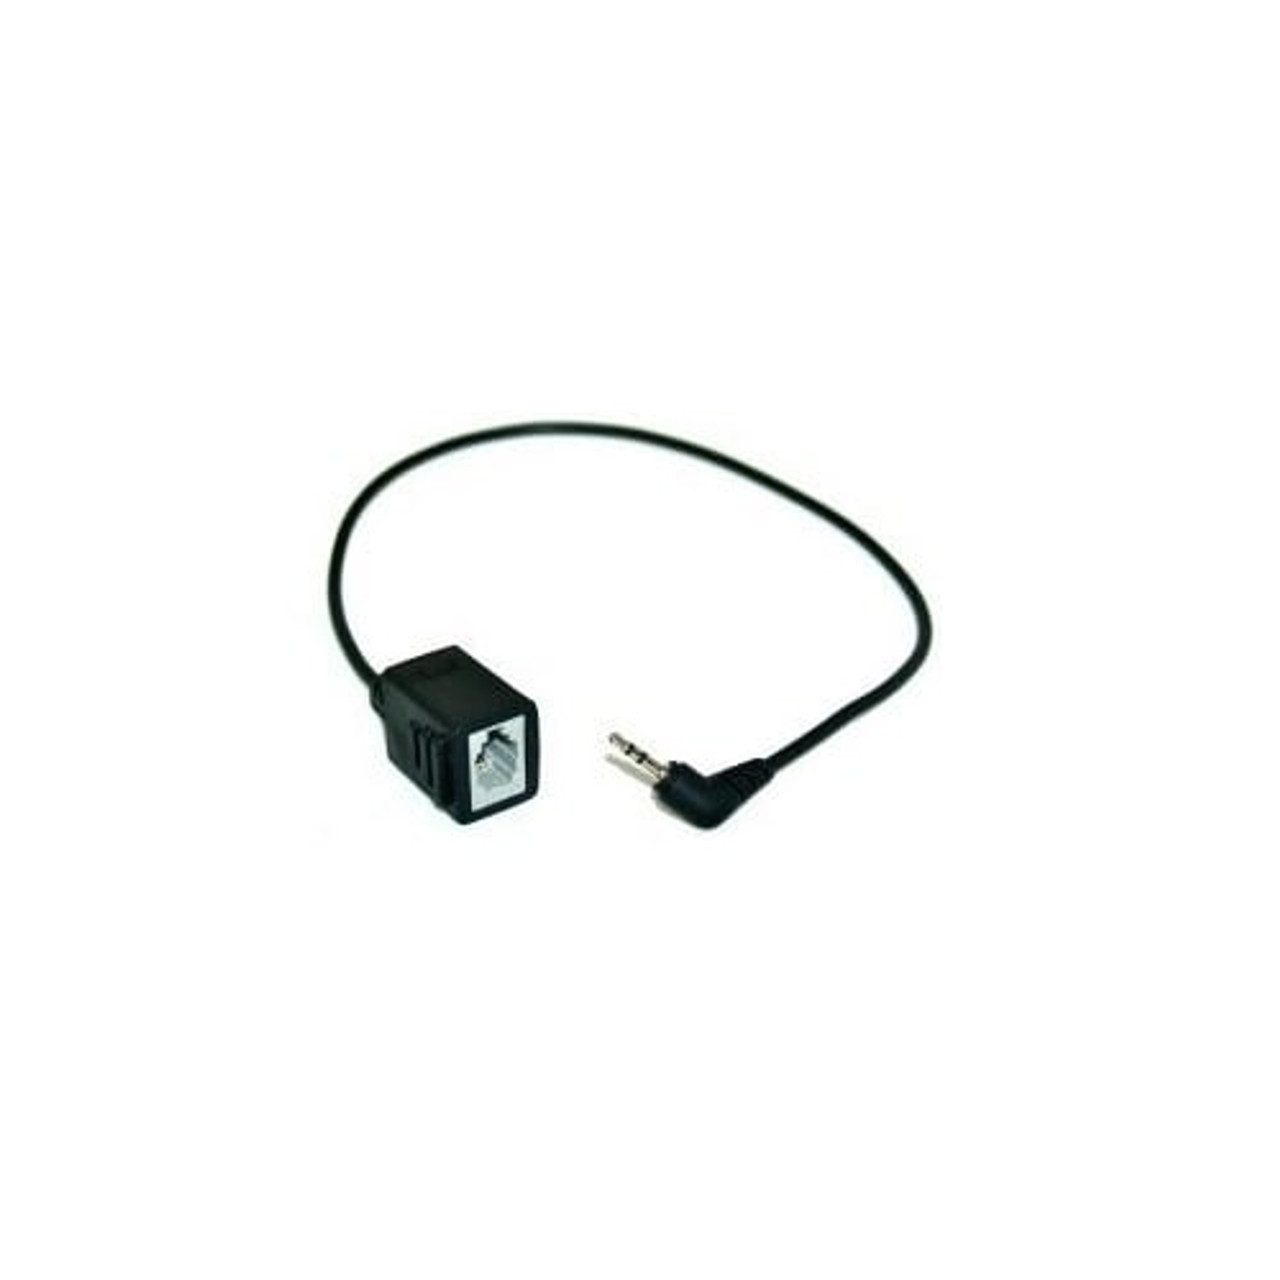 medium resolution of rj9 female 2 5mm male adapter plantronics headset to cordless phone connector cable